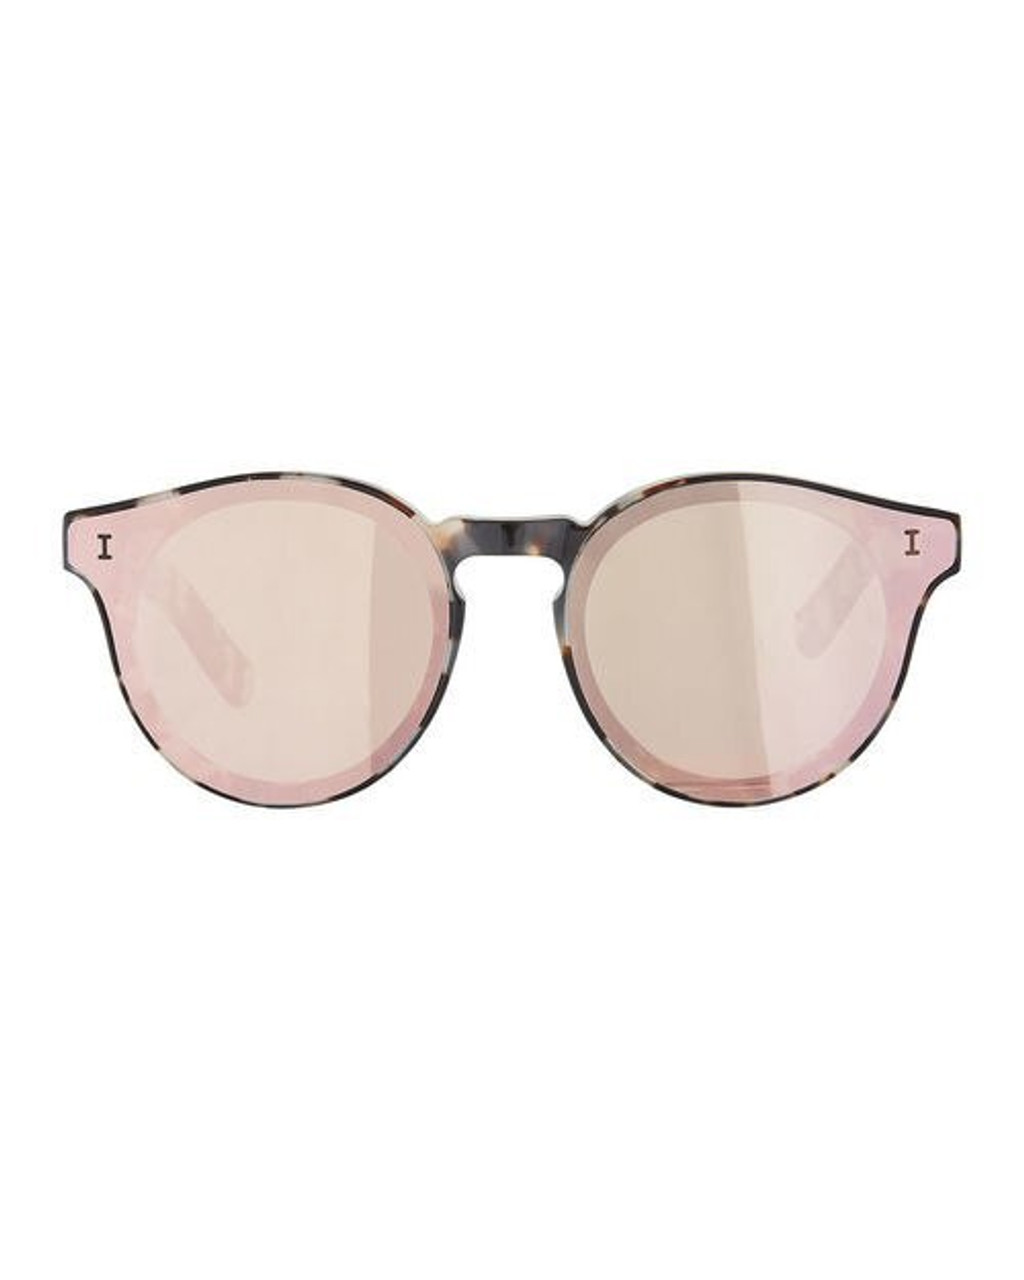 d04f5a69d3 Illesteva Two Point One Round Acetate Suglasses In White Tortoise Rose -  CHROME